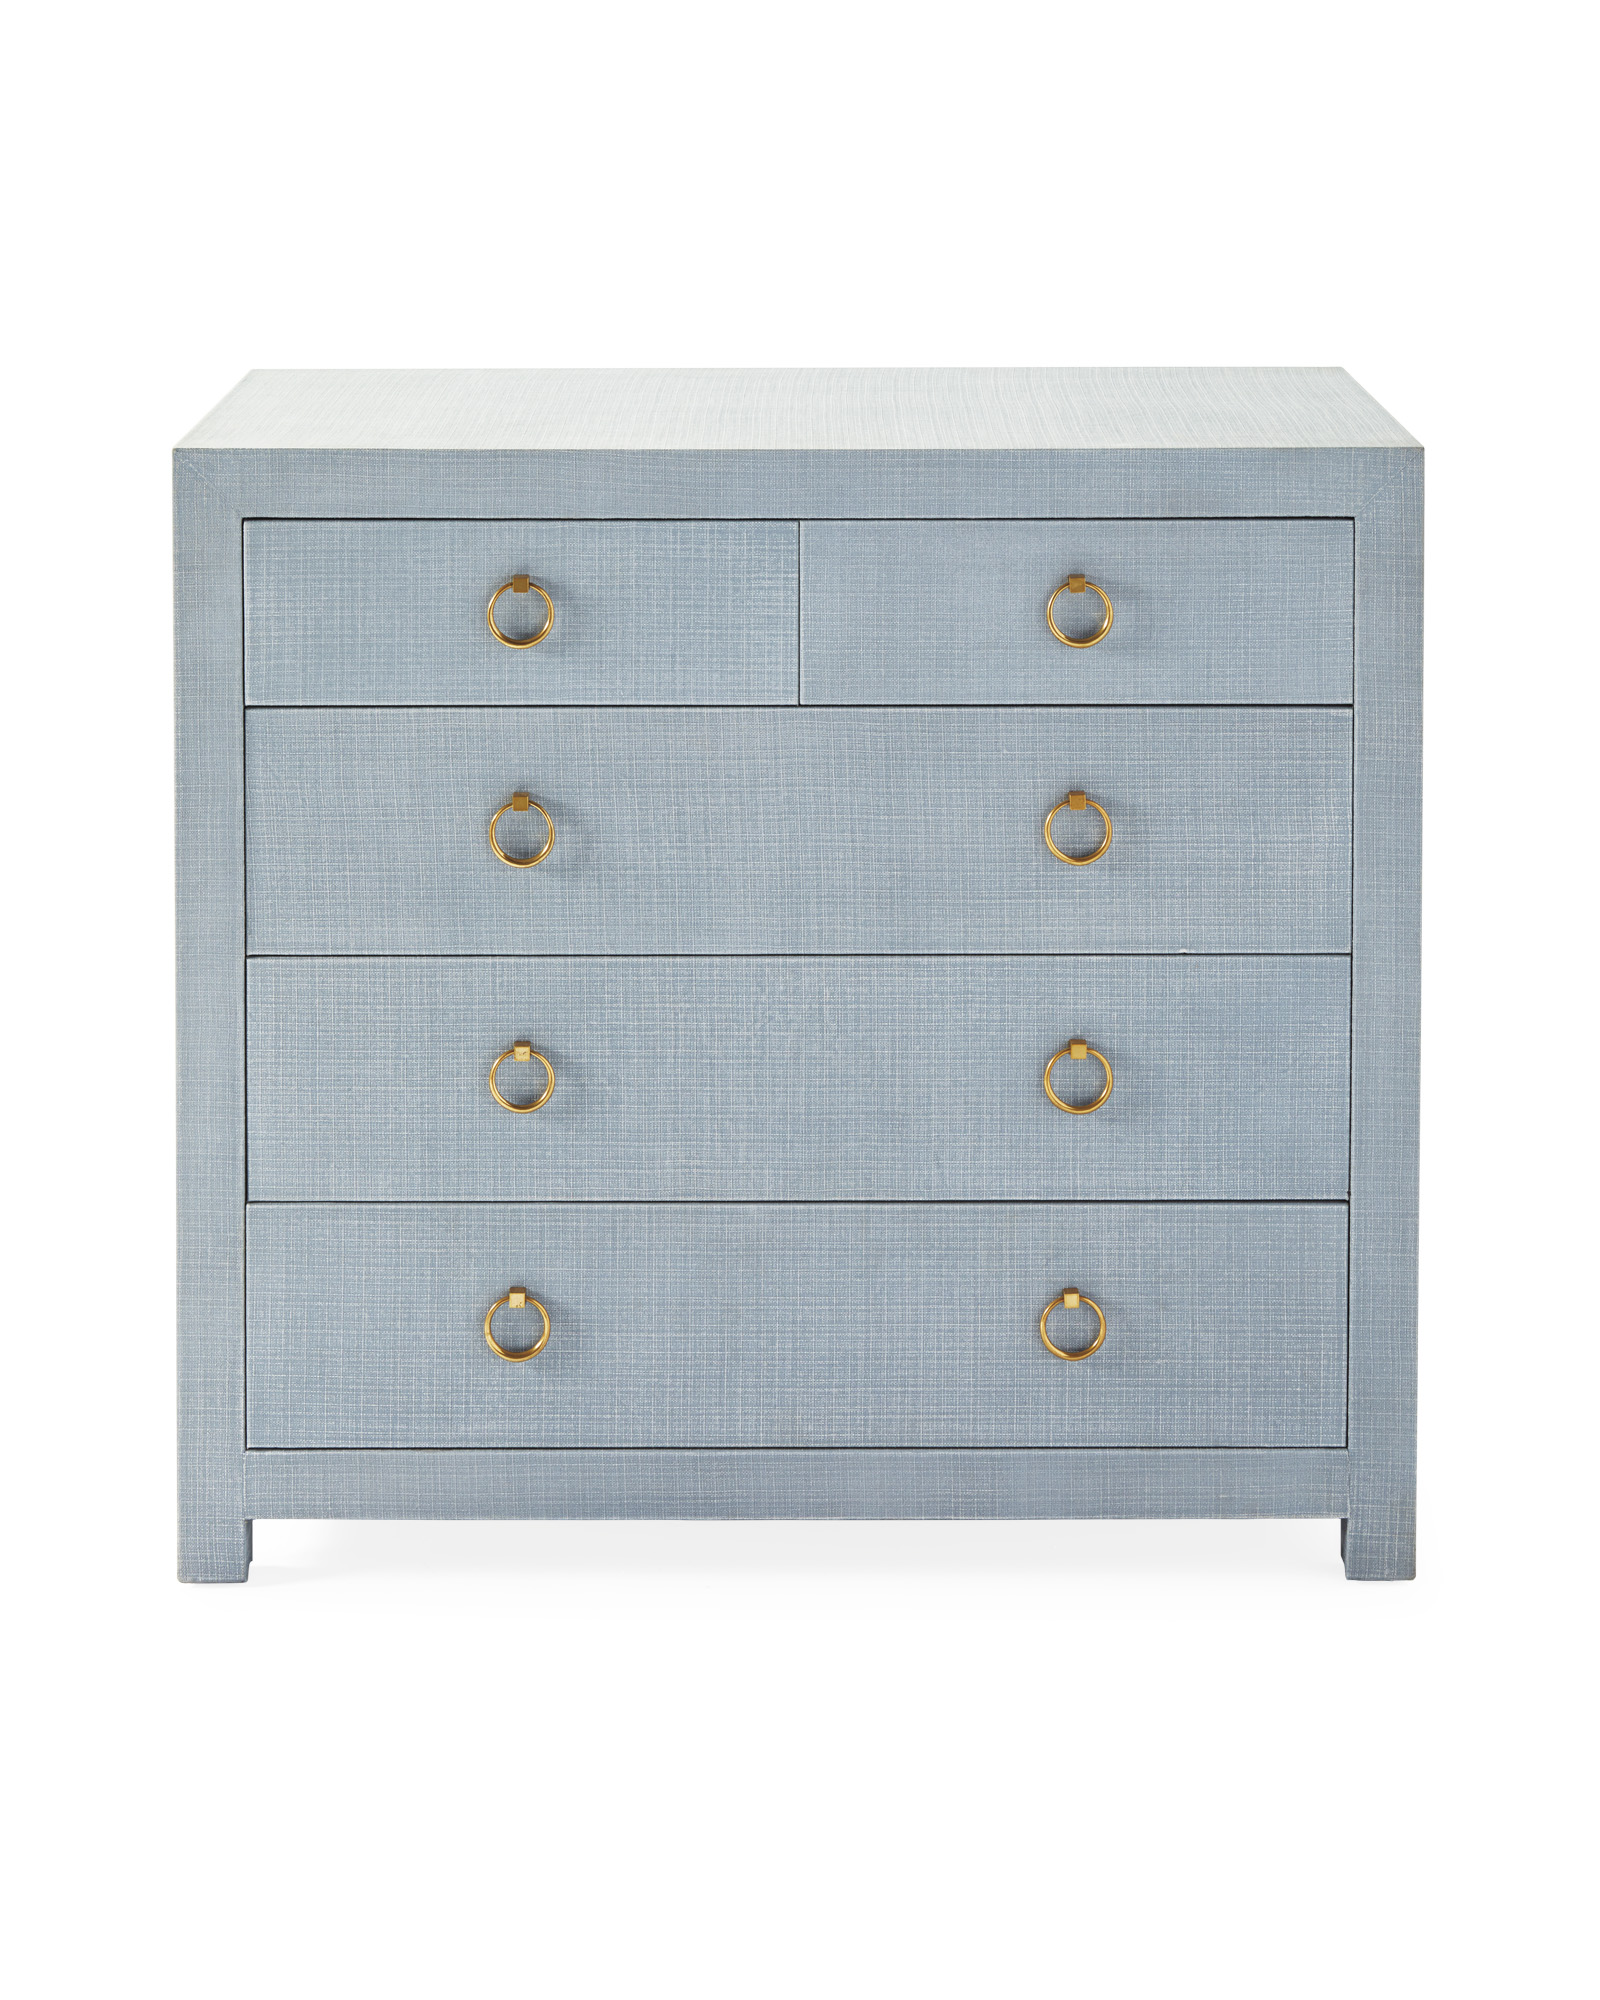 Driftway Tall Dresser, Coastal Blue